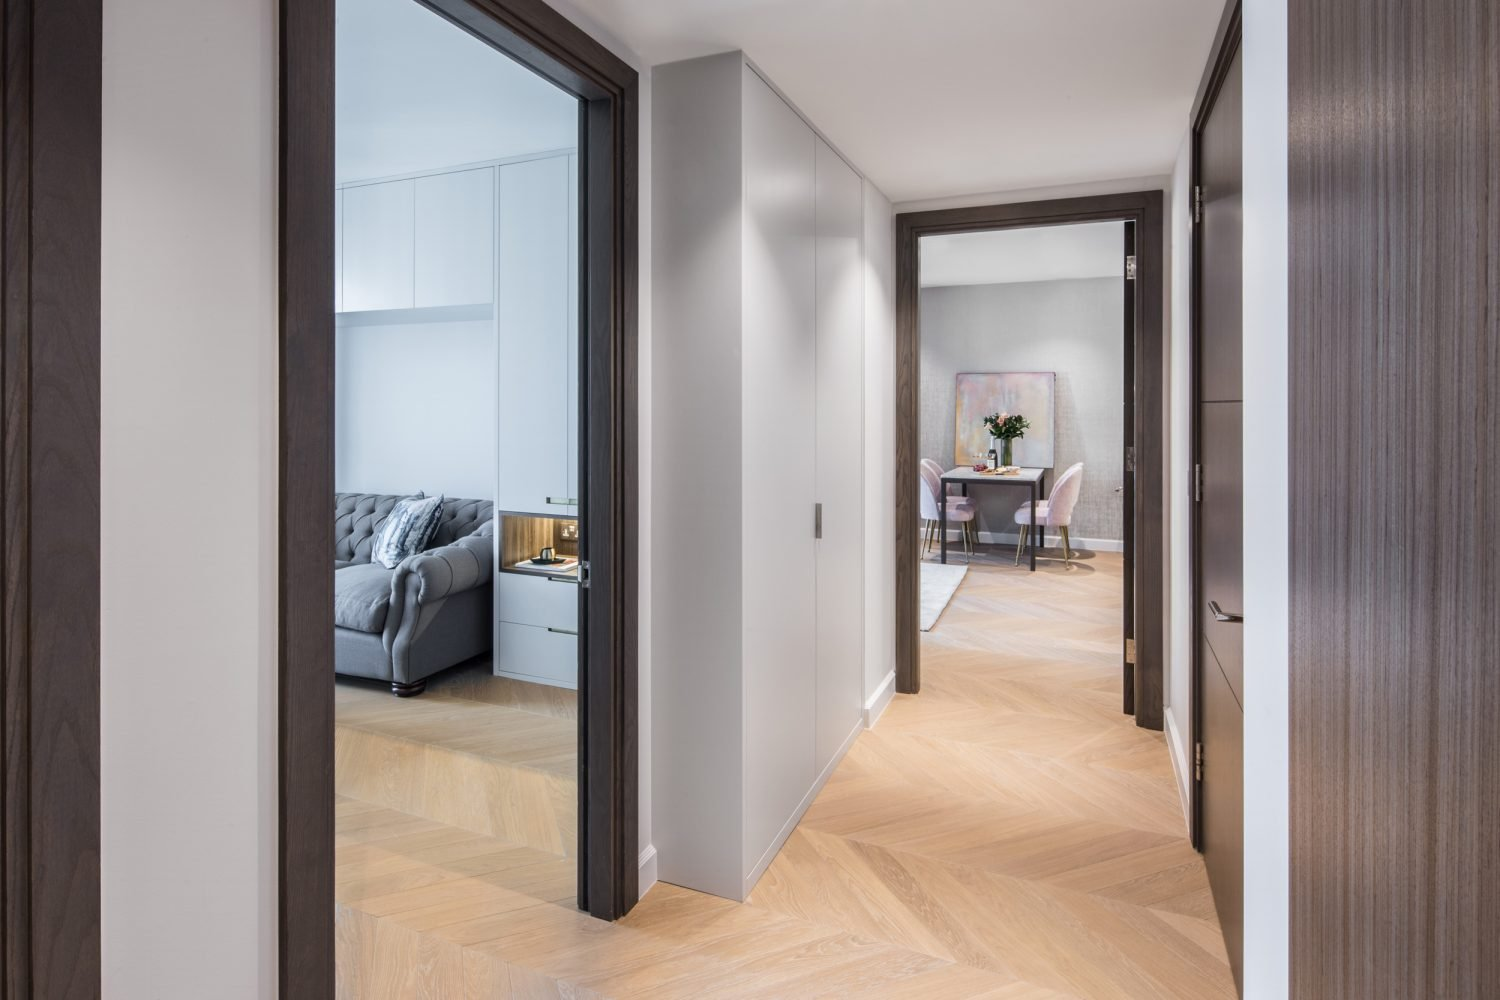 residential painting and decorating services for corridor, westminster, London